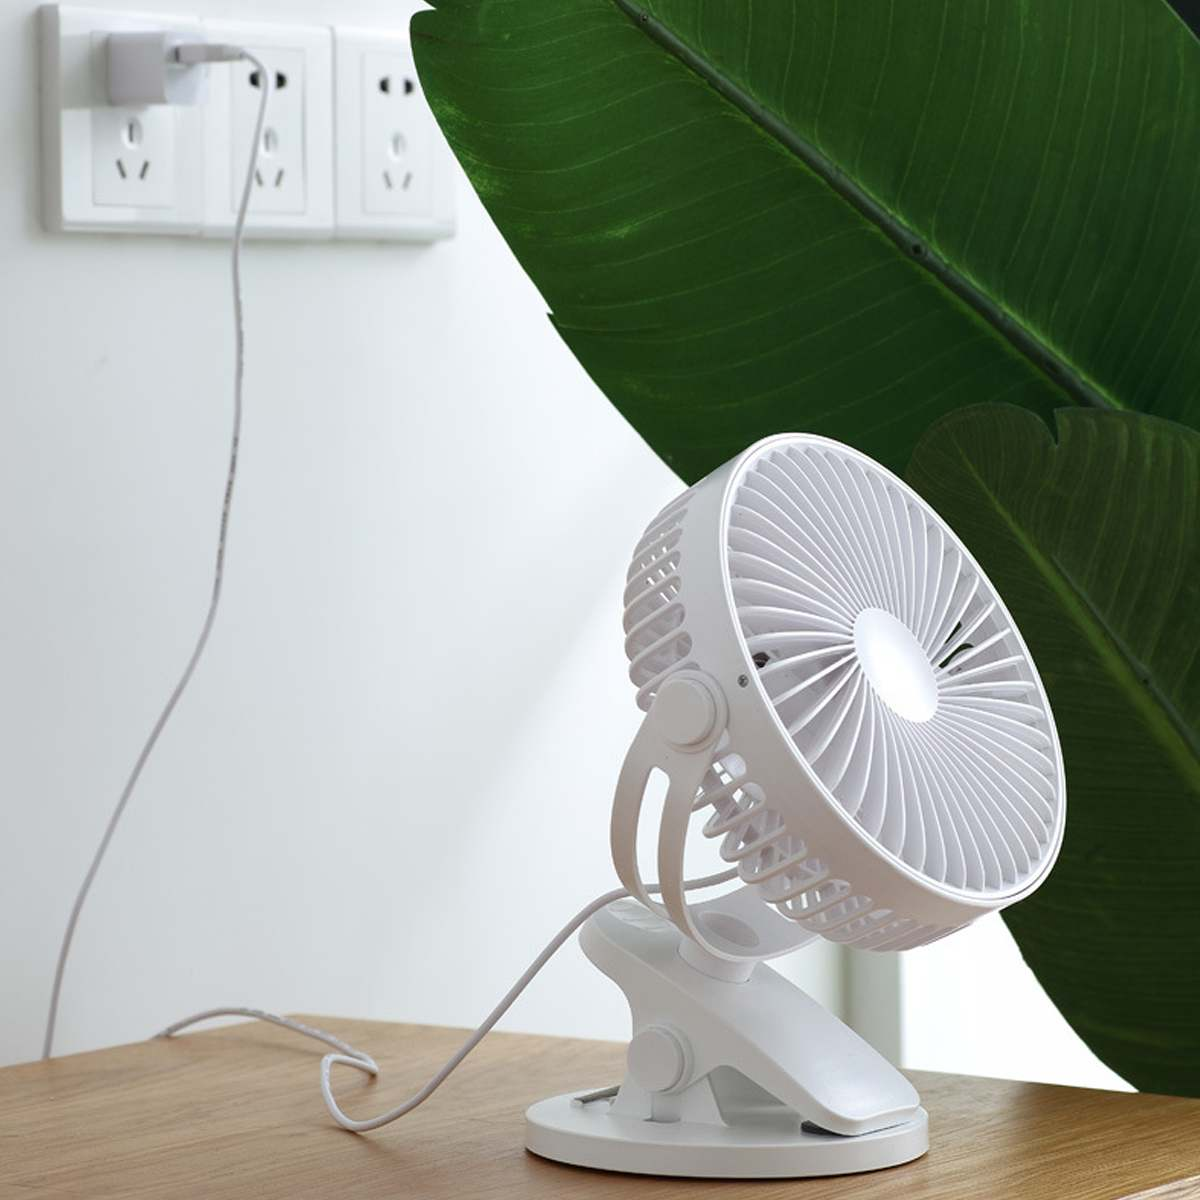 4/6 Inch USB Clip Desktop Table Fan Mini Portable Clamp 3 Speeds Desk Fan Rotatable Ventilator Strong Wind